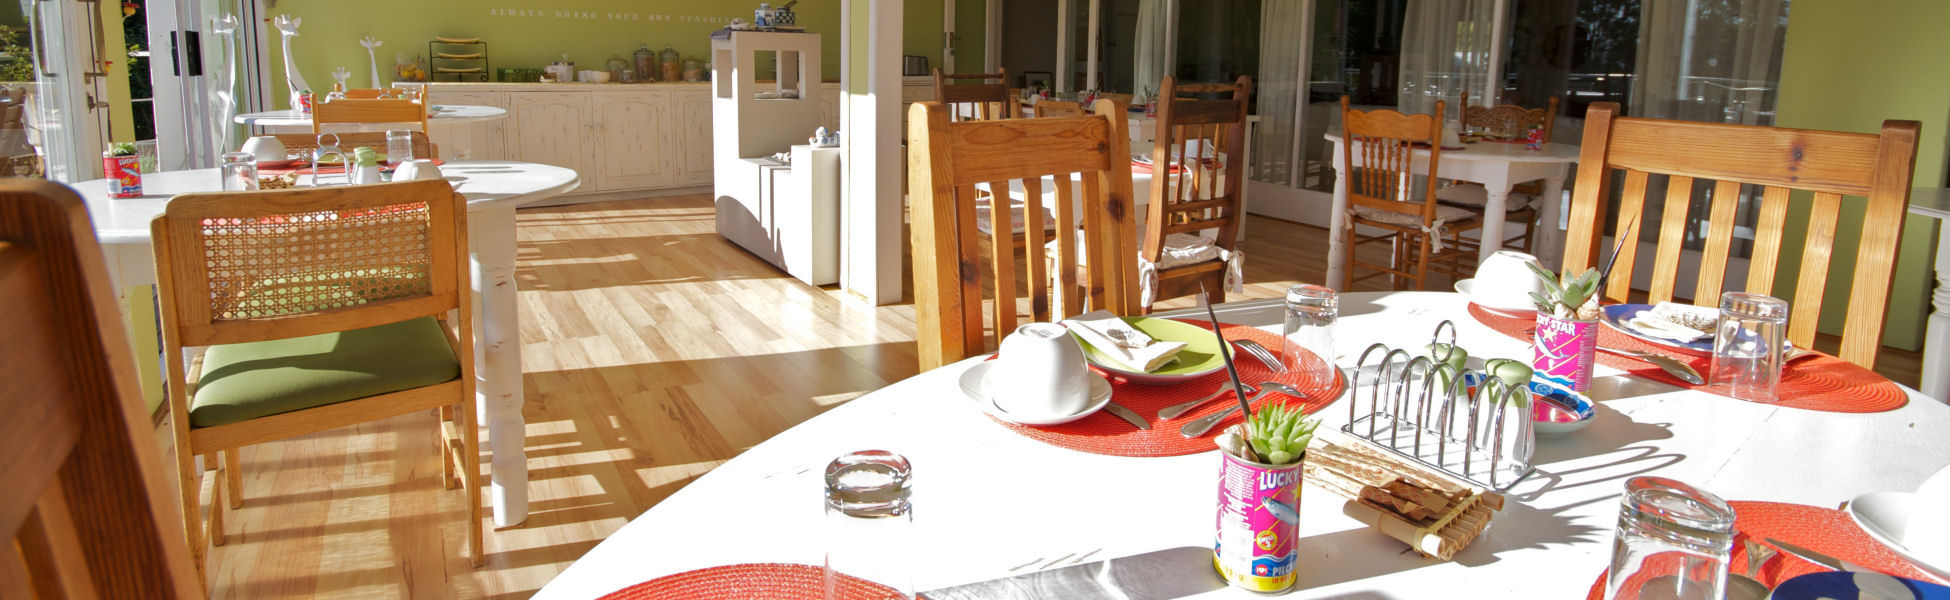 Stannards Guest House - enjoy the Breakfast Buffet